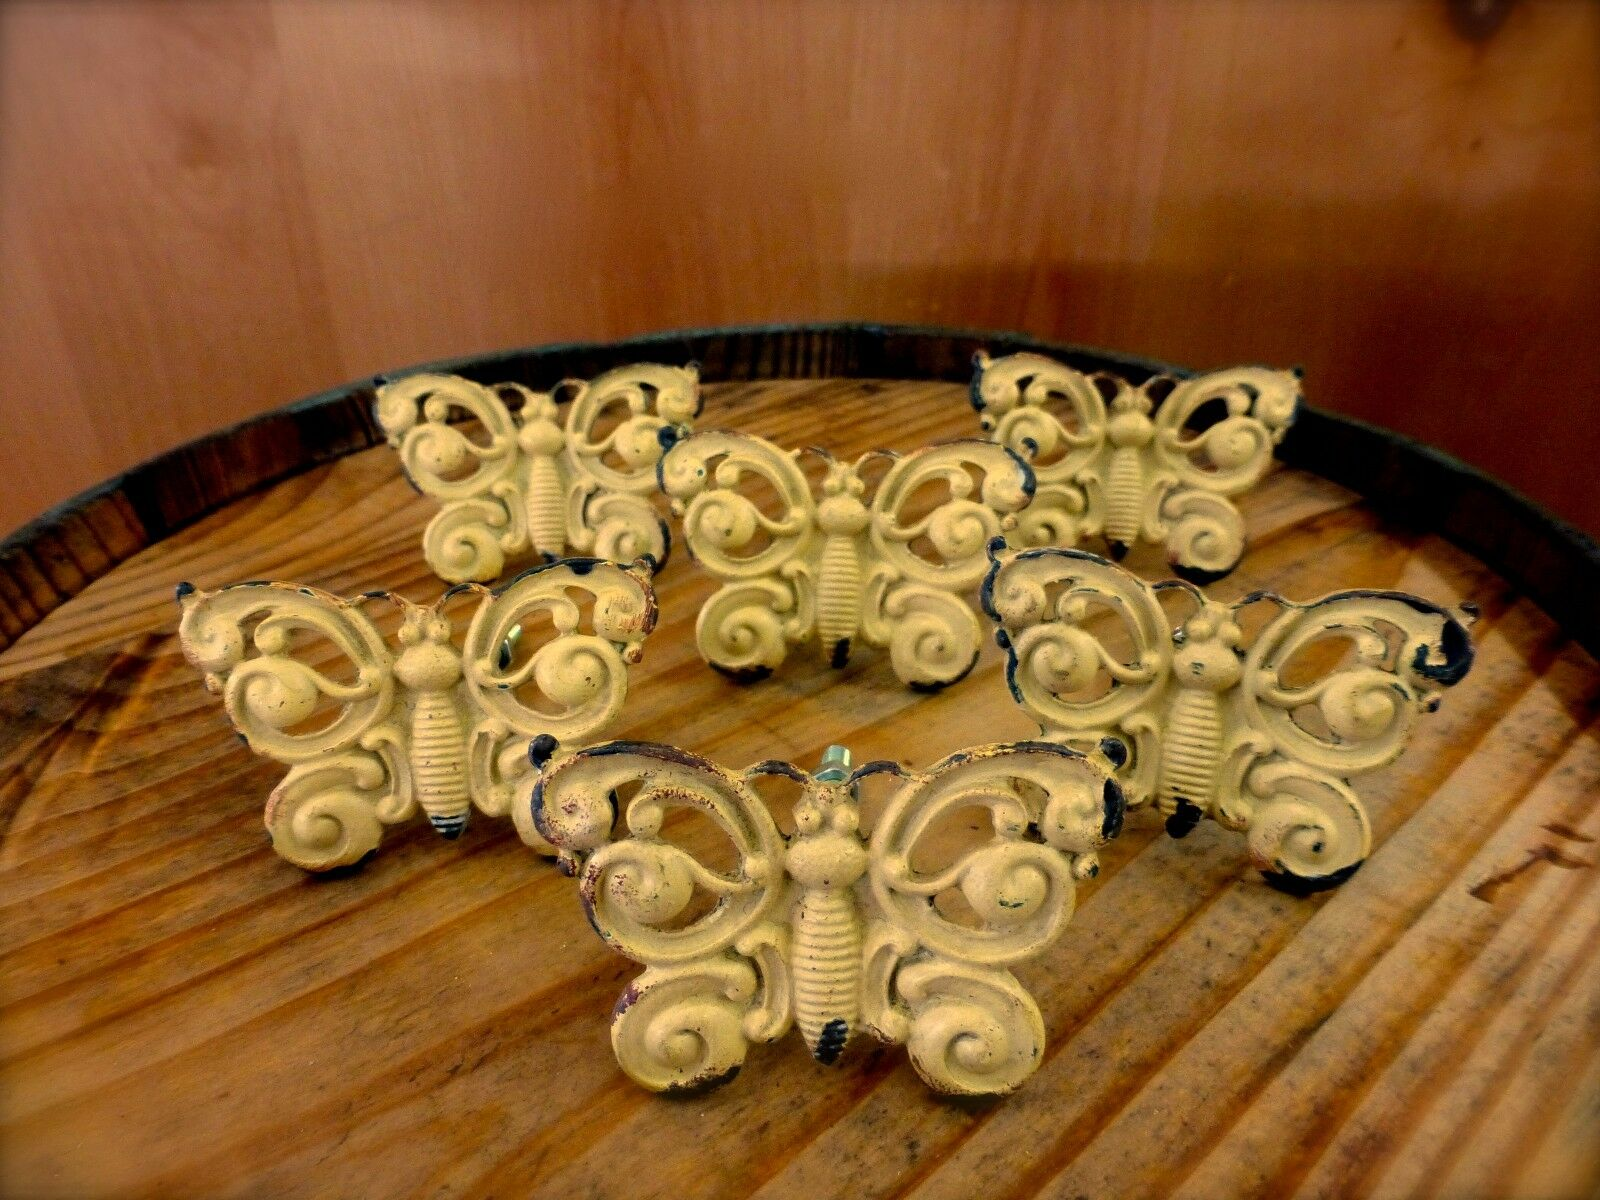 6 YELLOW VINTAGE-STYLE FANCY BUTTERFLY DRAWER CABINET PULL HANDLE KNOB hardware